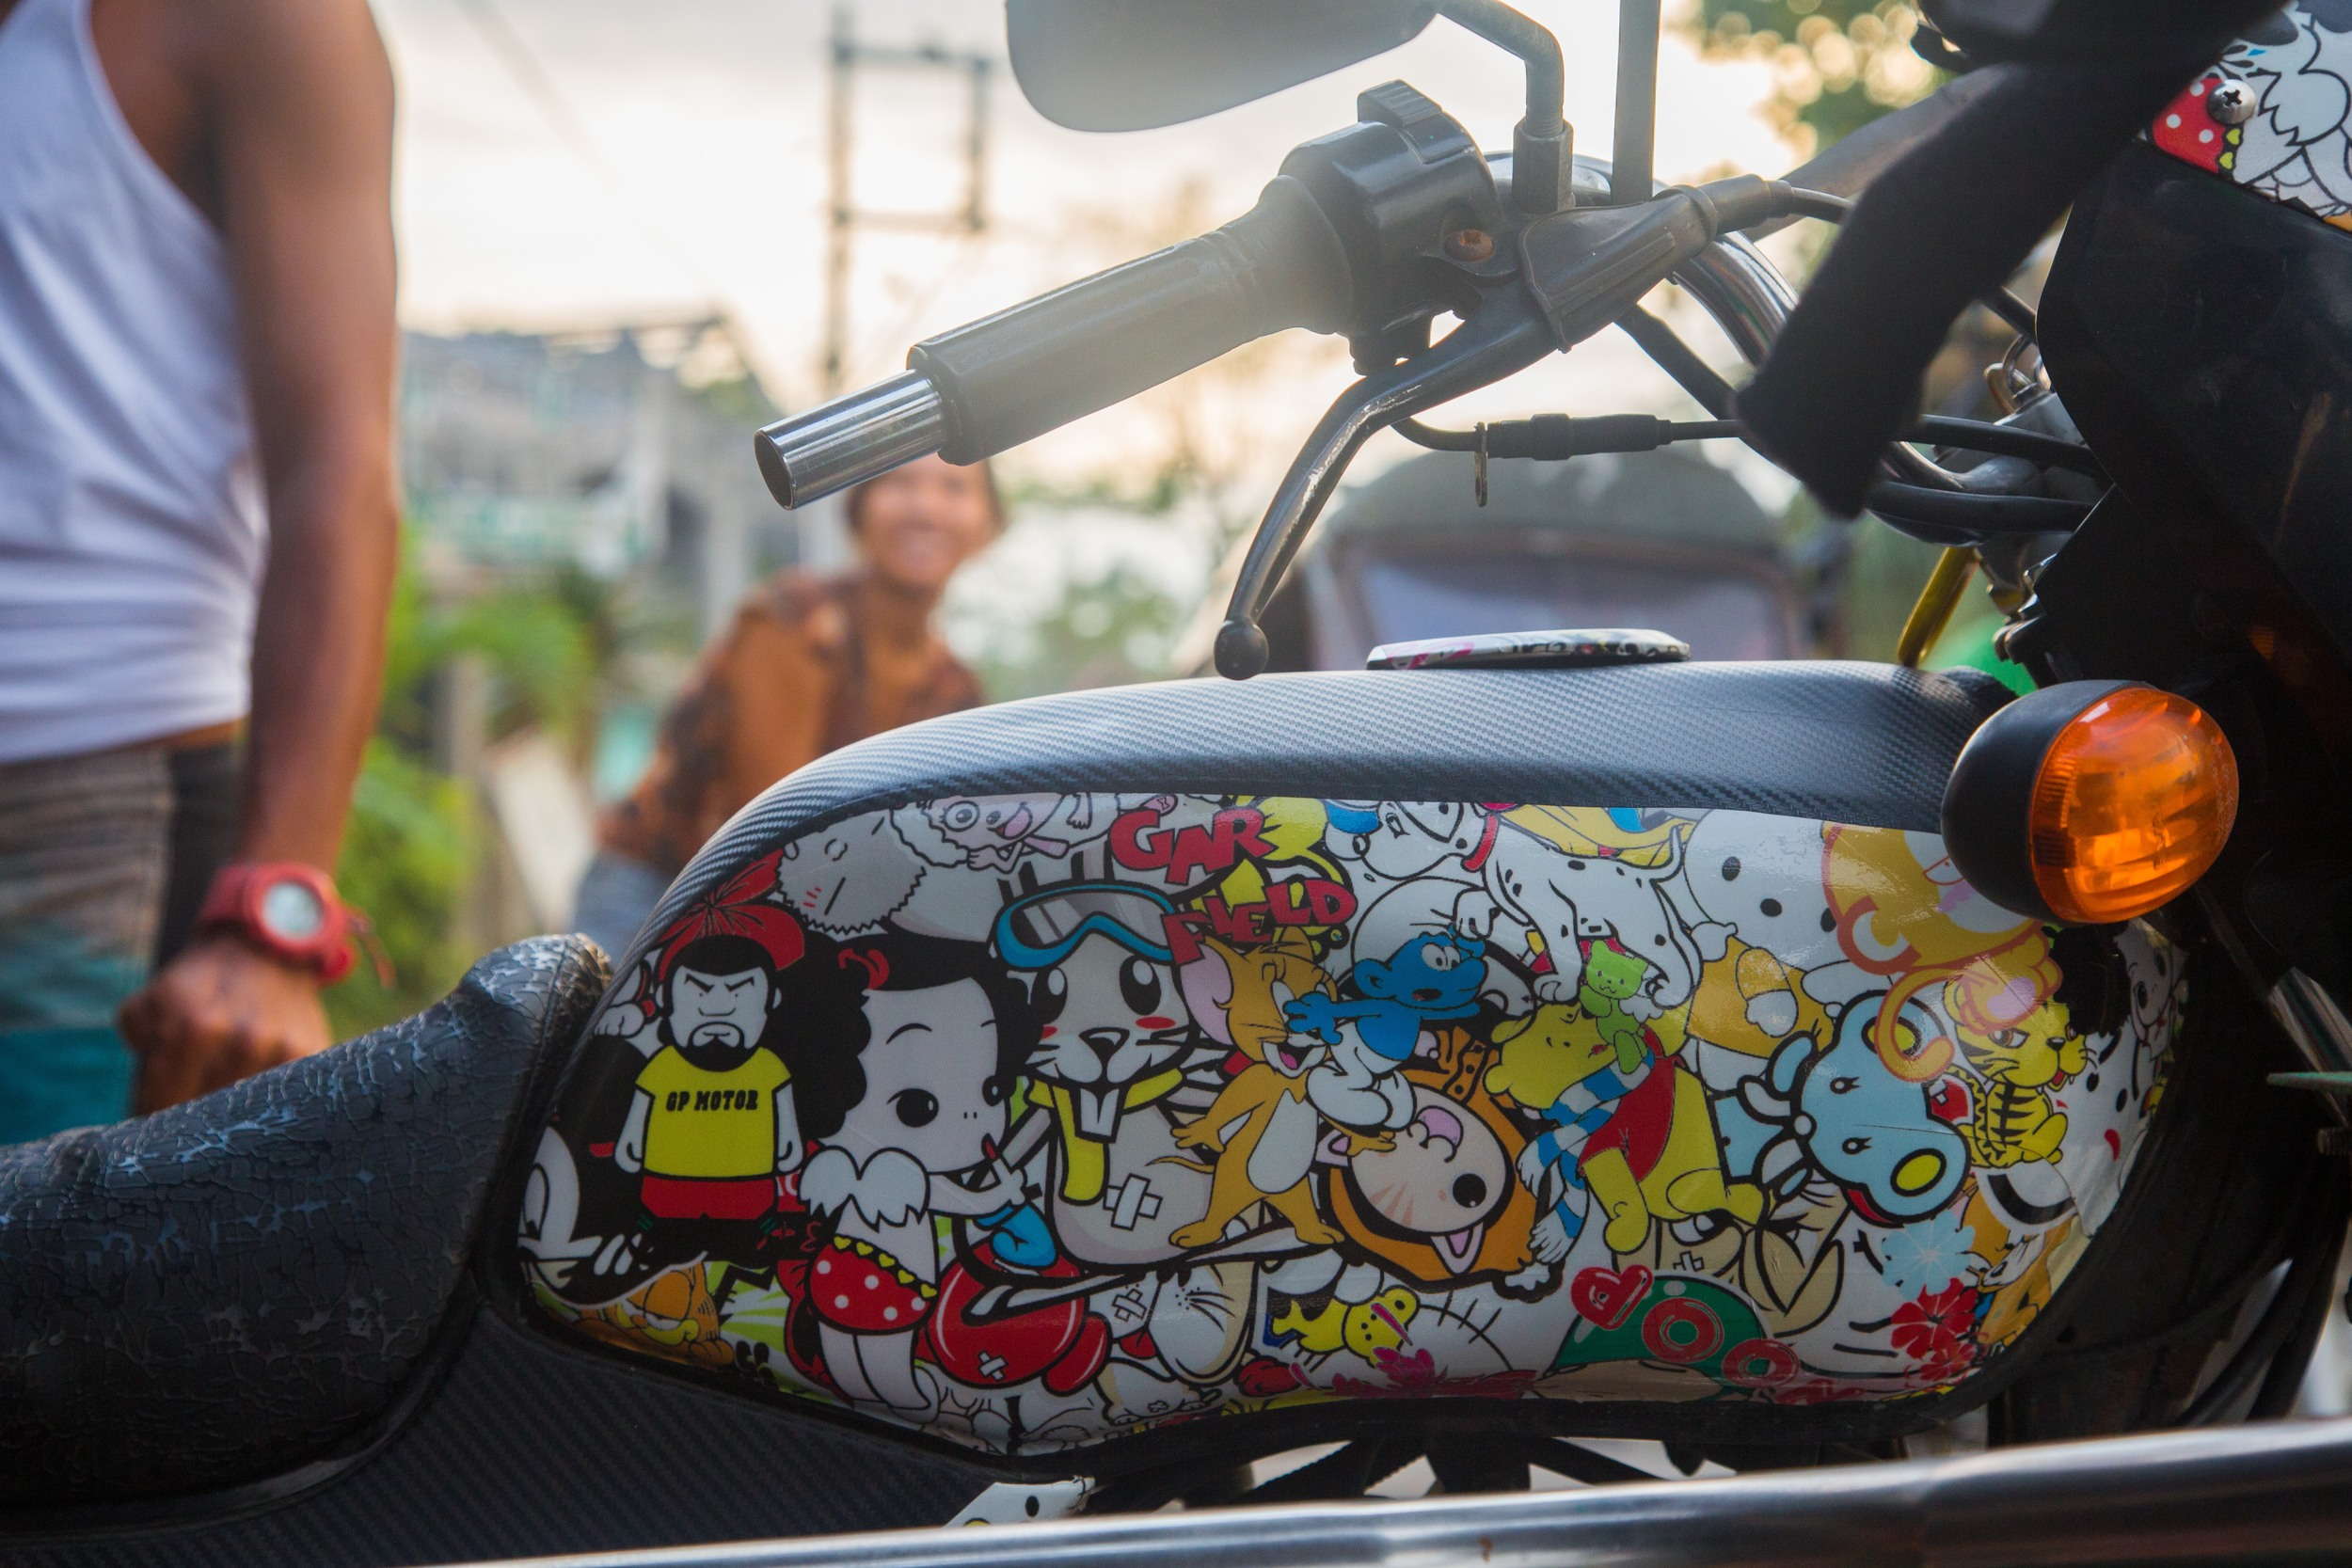 Our man Mike's rad tricycle paint job!